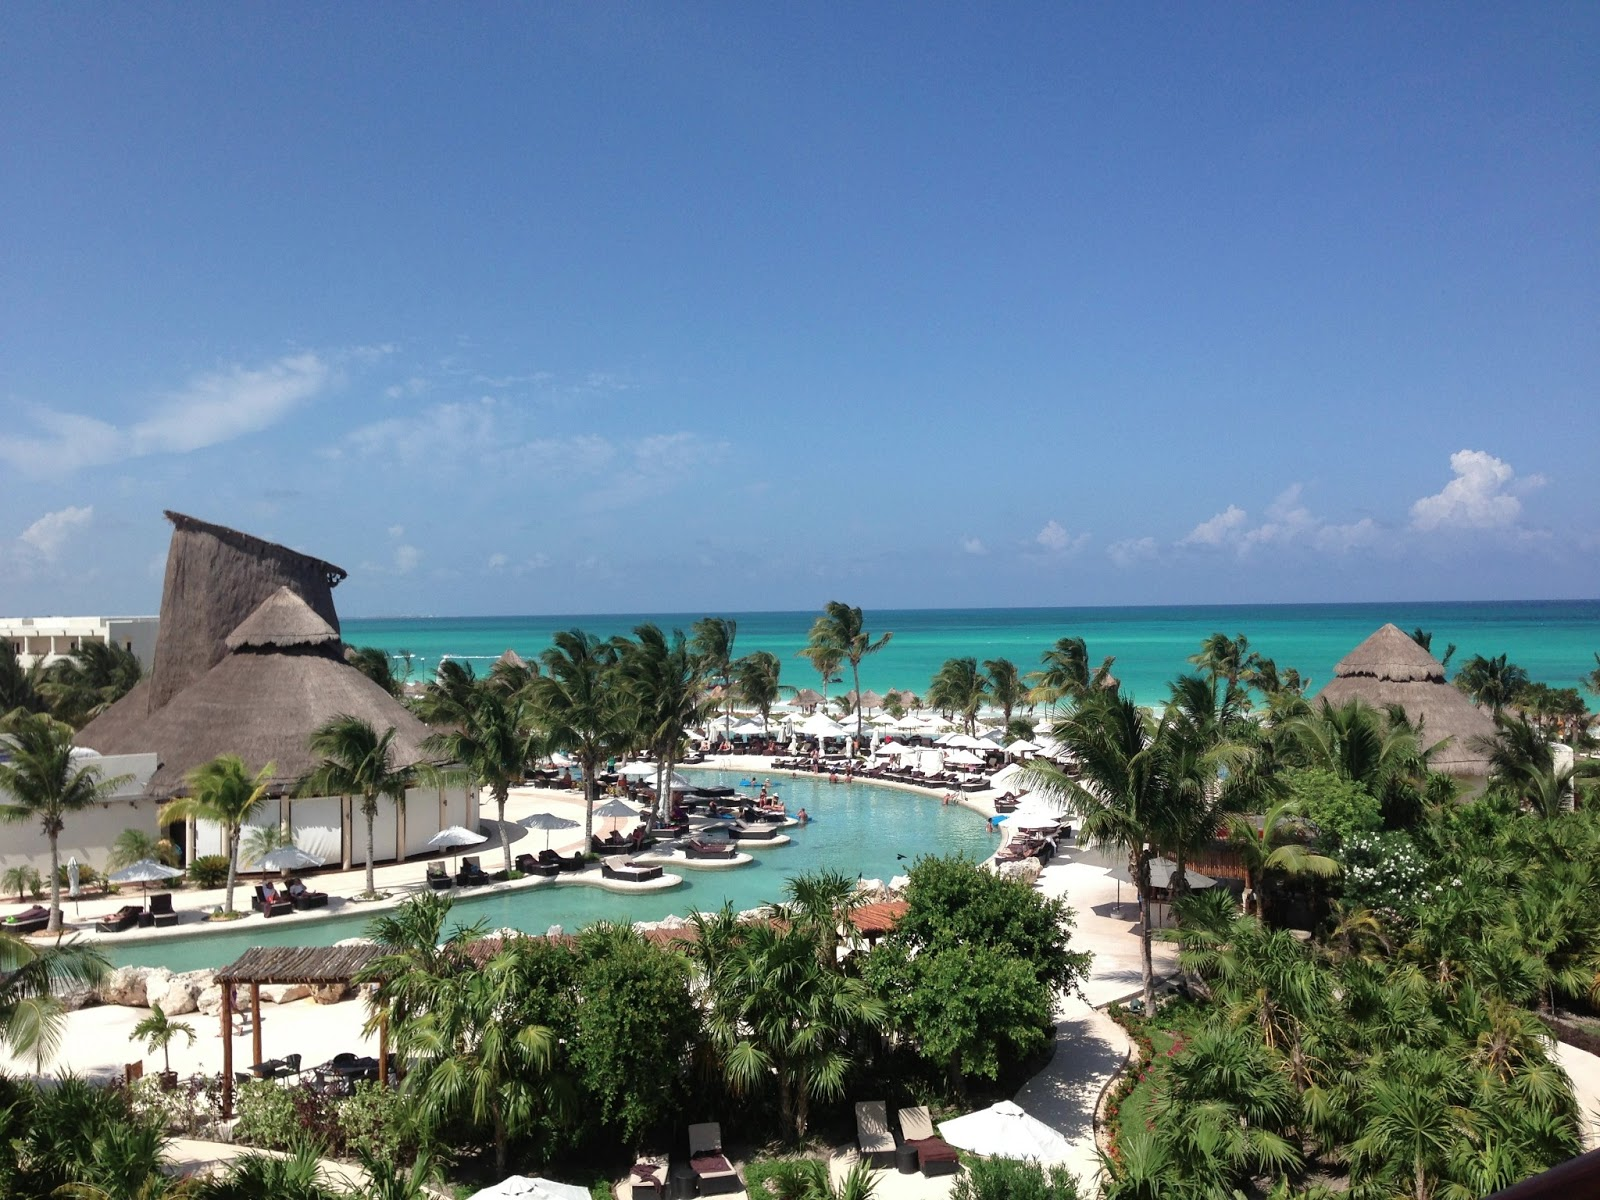 Everything About Secrets Maroma Beach Was Remarkable The Incredible View From Our Fourth Floor Room Vibrant Aqua Colored Ocean Gorgeous